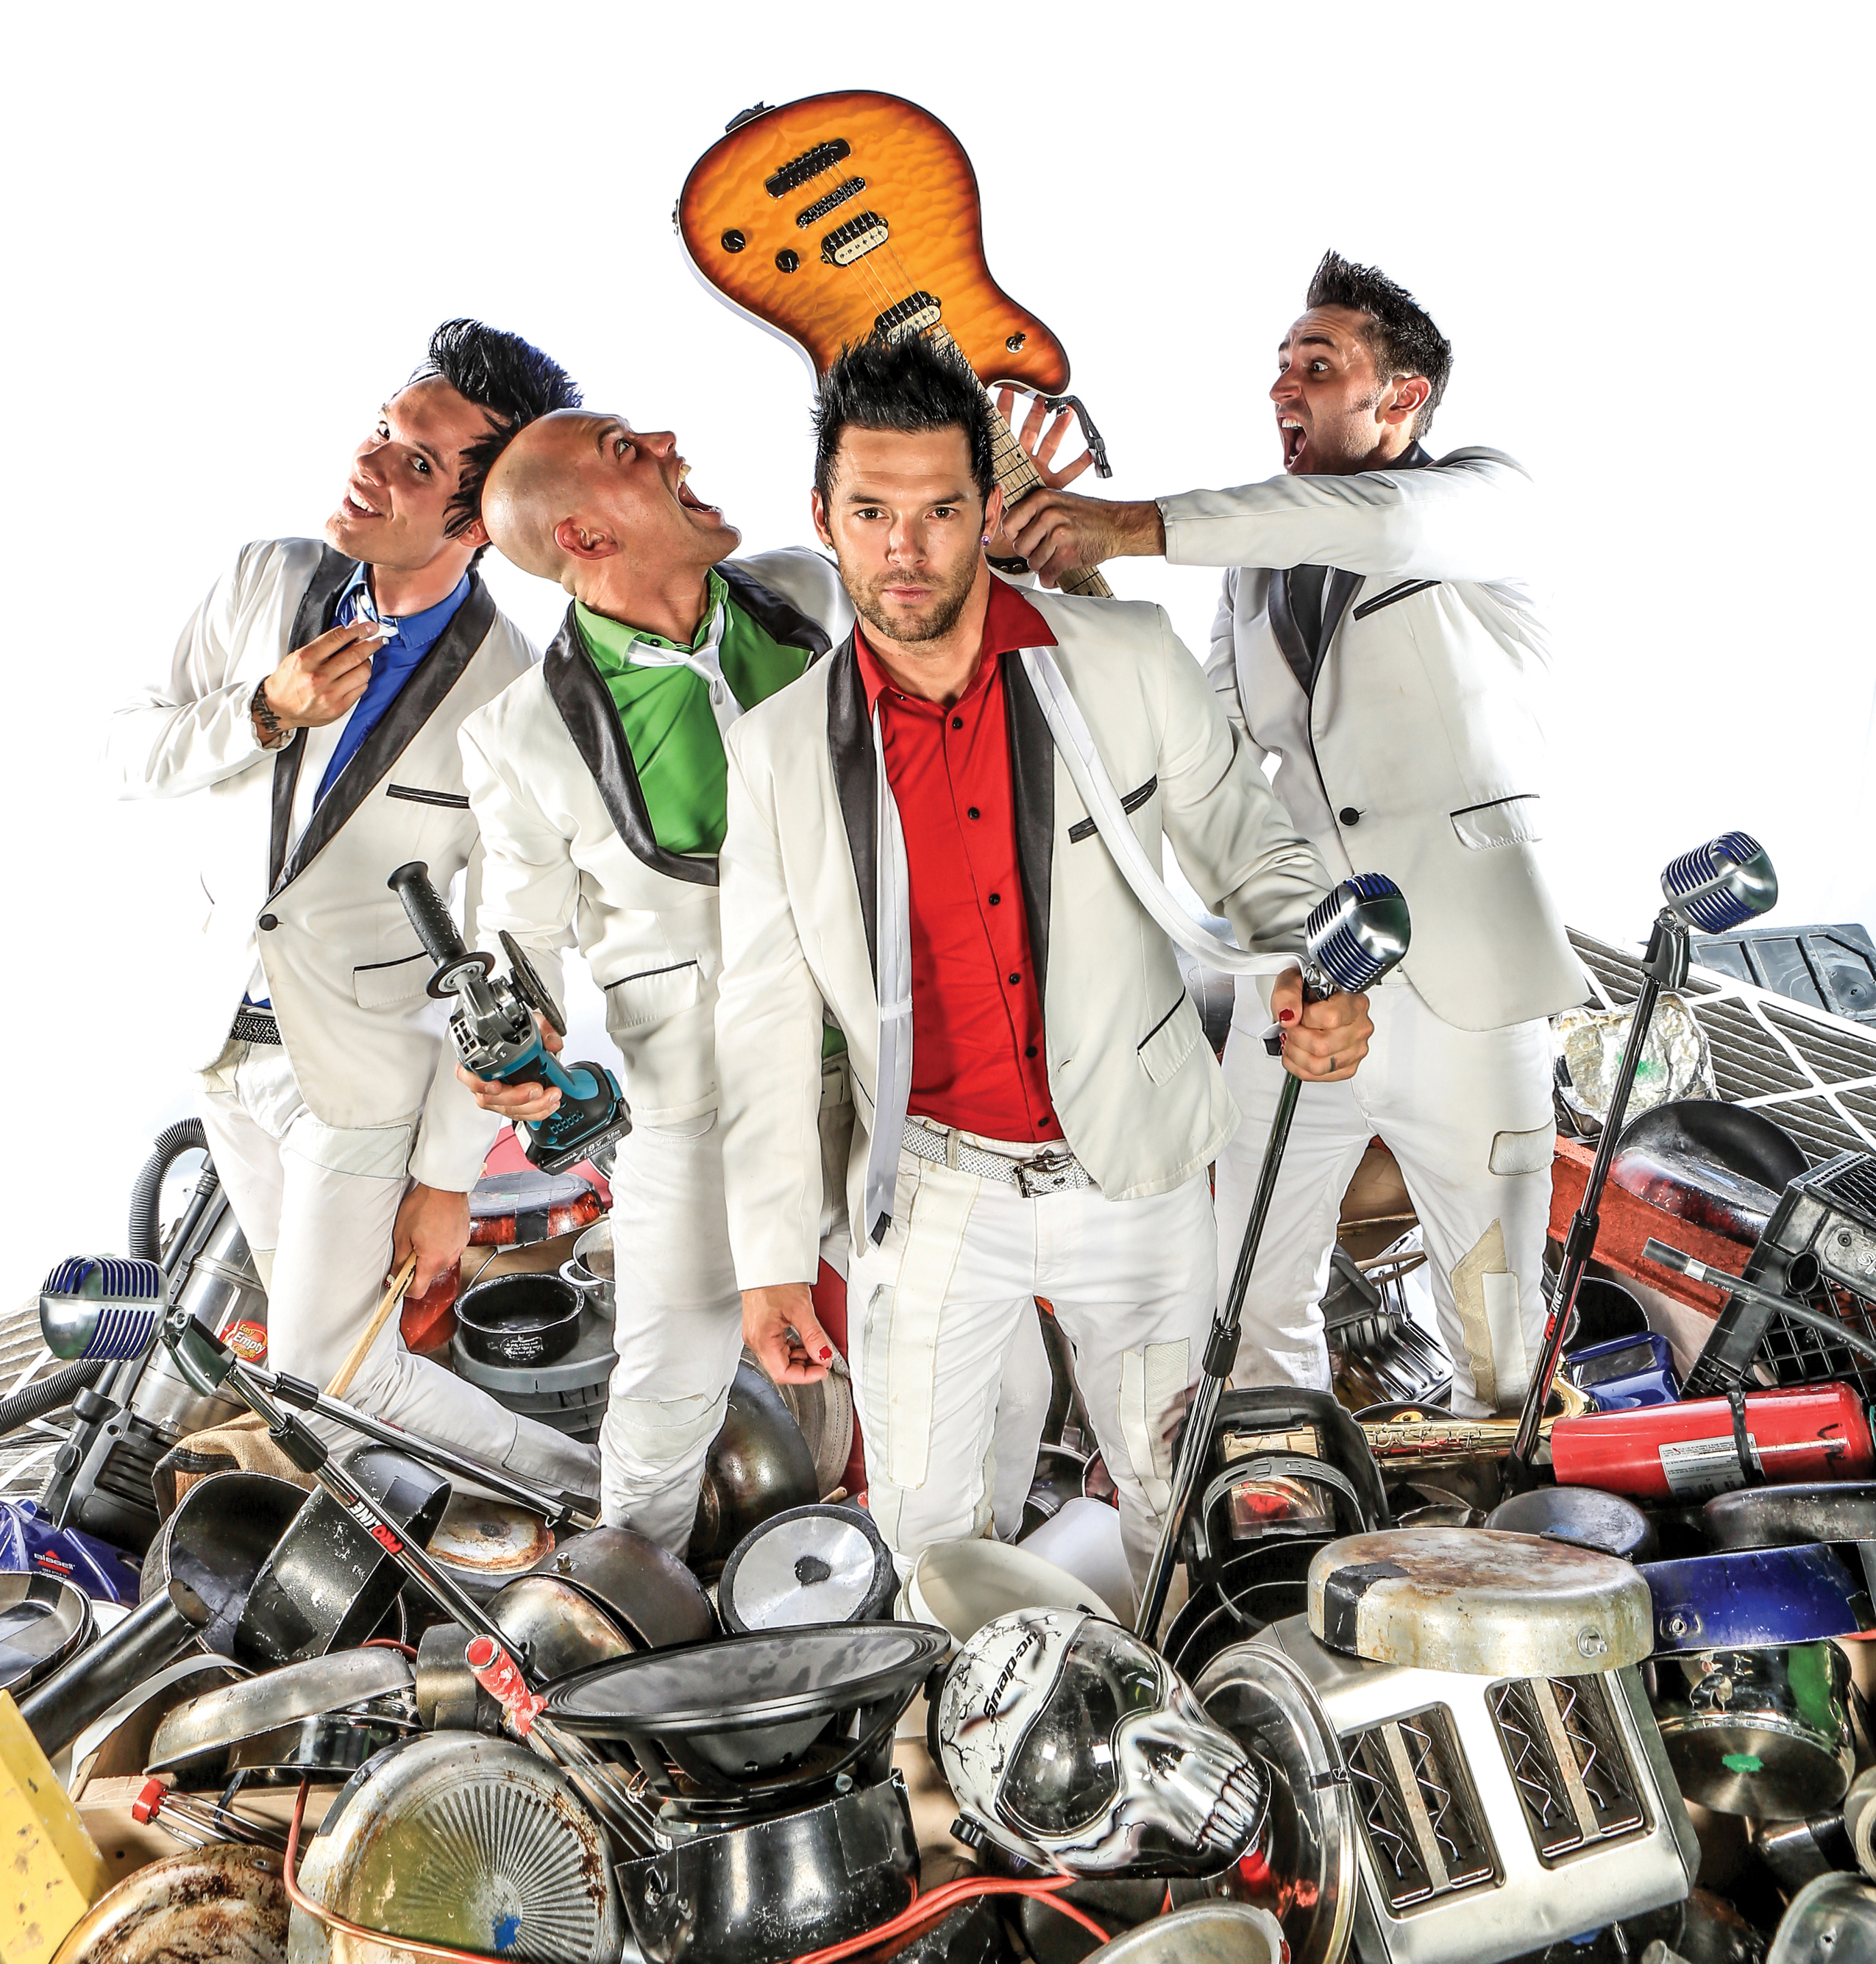 Recycled Percussion Performs live at Kewadin Casino Dream Maker's Theater